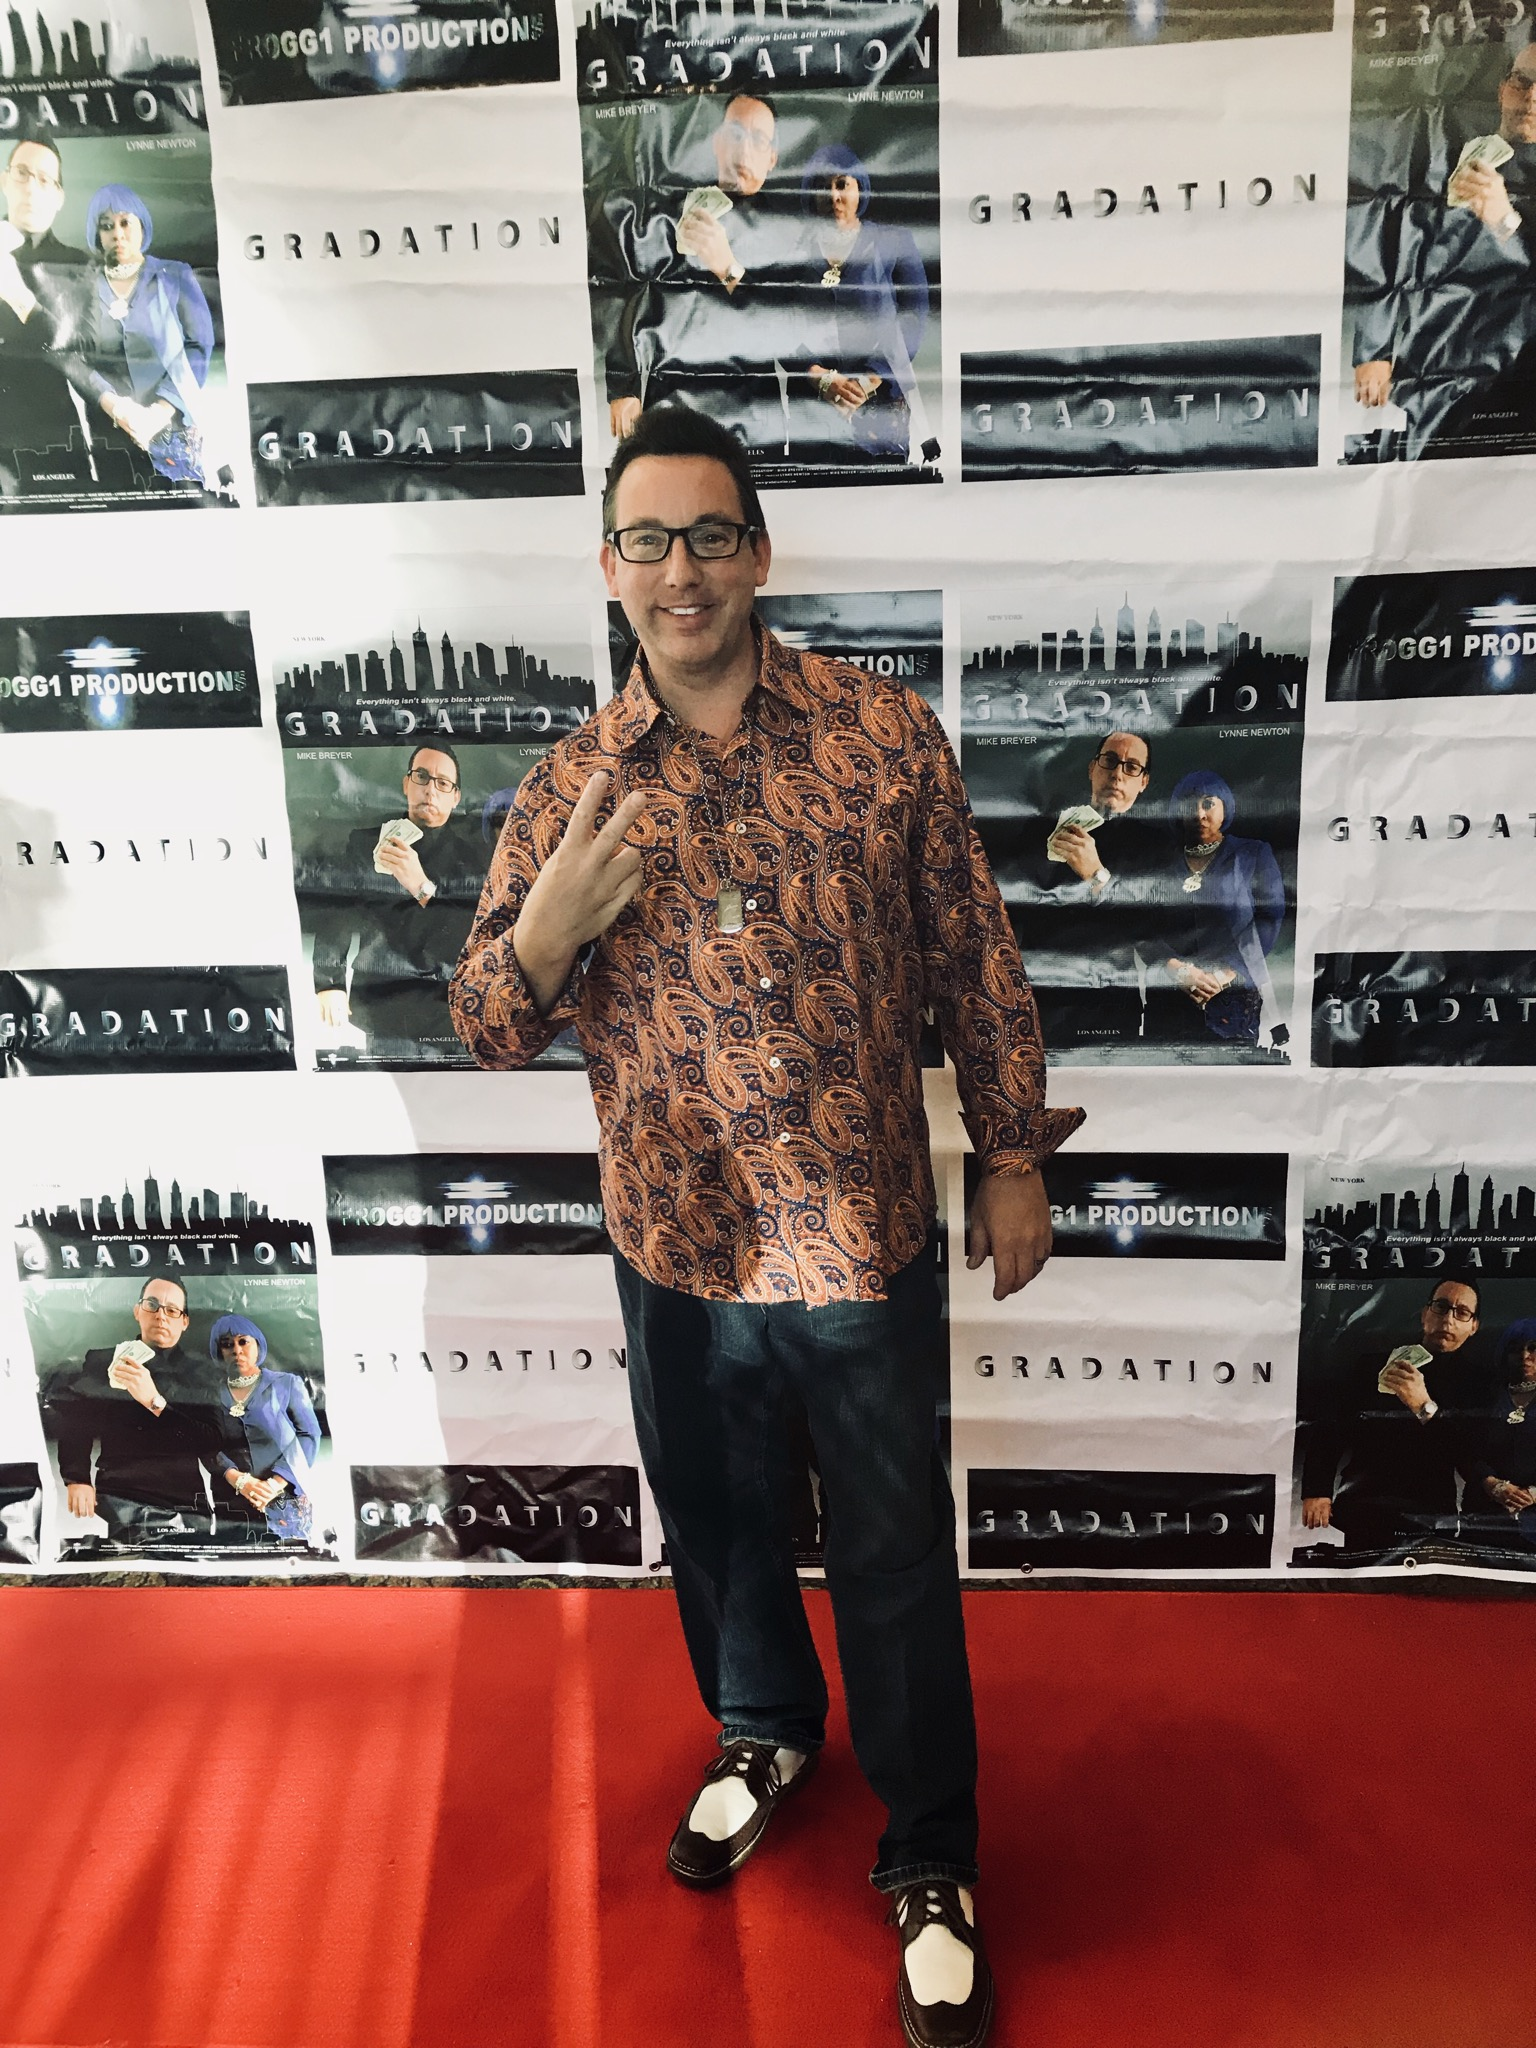 Mike Breyer at the red carpet Premiere of his feature Film Gradation at Mary Pickford Theater in Palm Springs.  October 4, 2018.